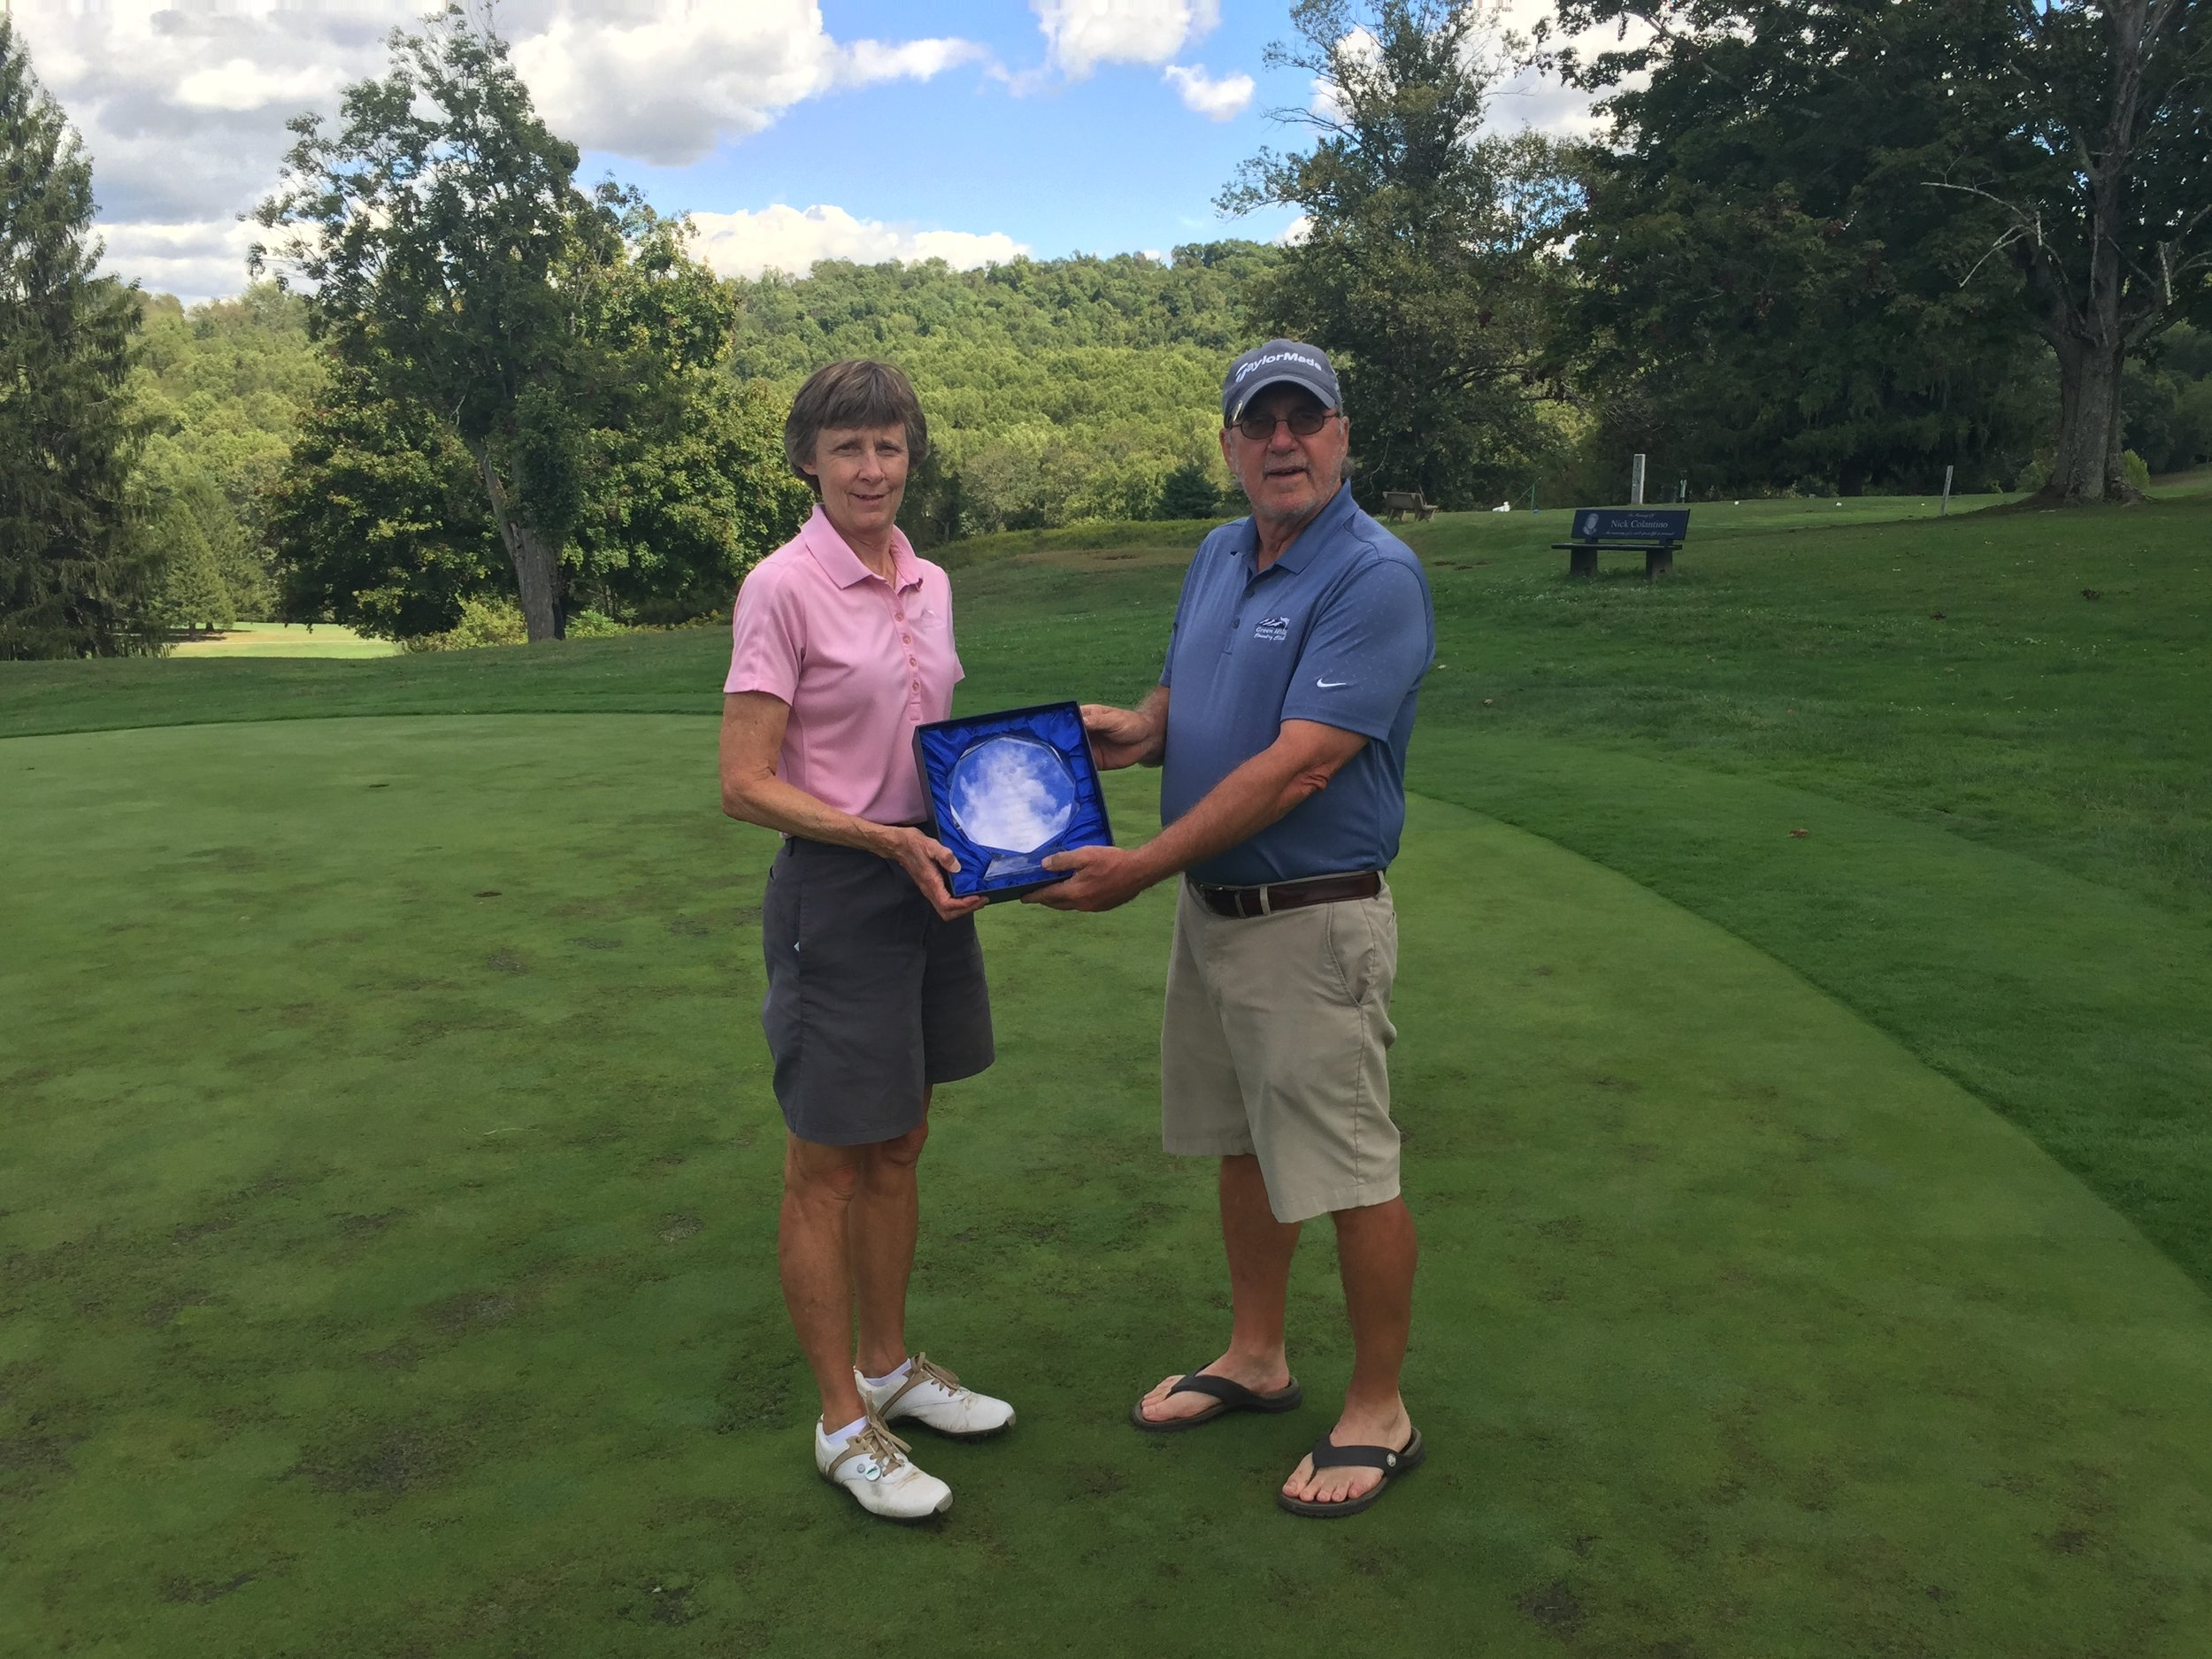 Shelley Hyde wins the 2016 Women's Club Championship with a net 73-75.